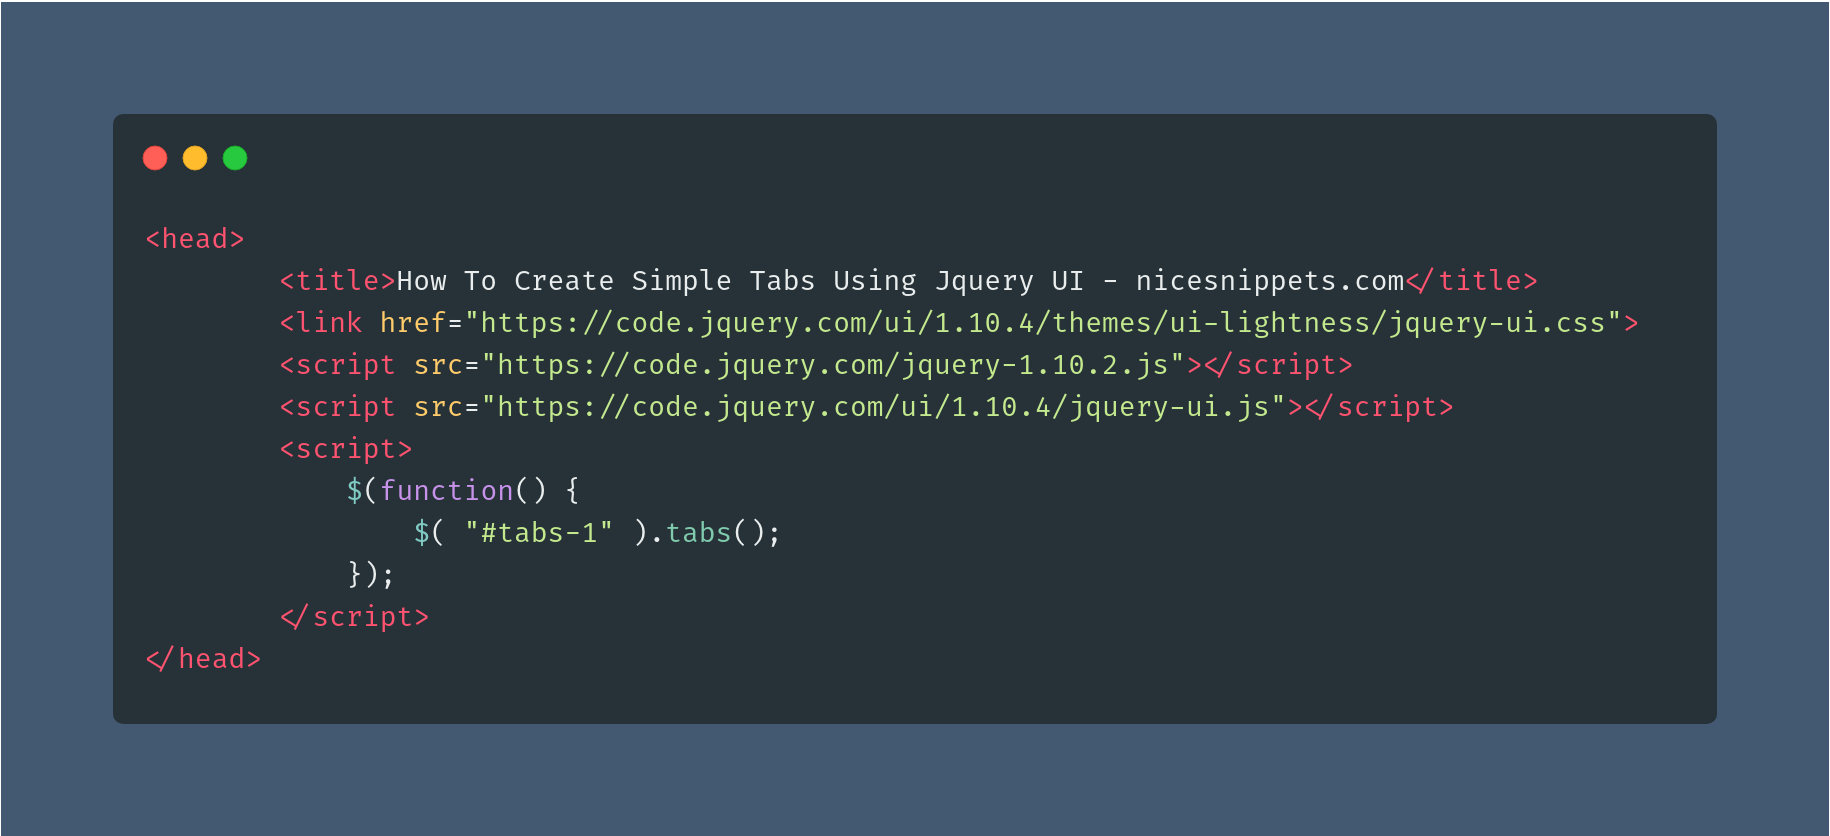 How To Create Simple Tabs Using Jquery UI?